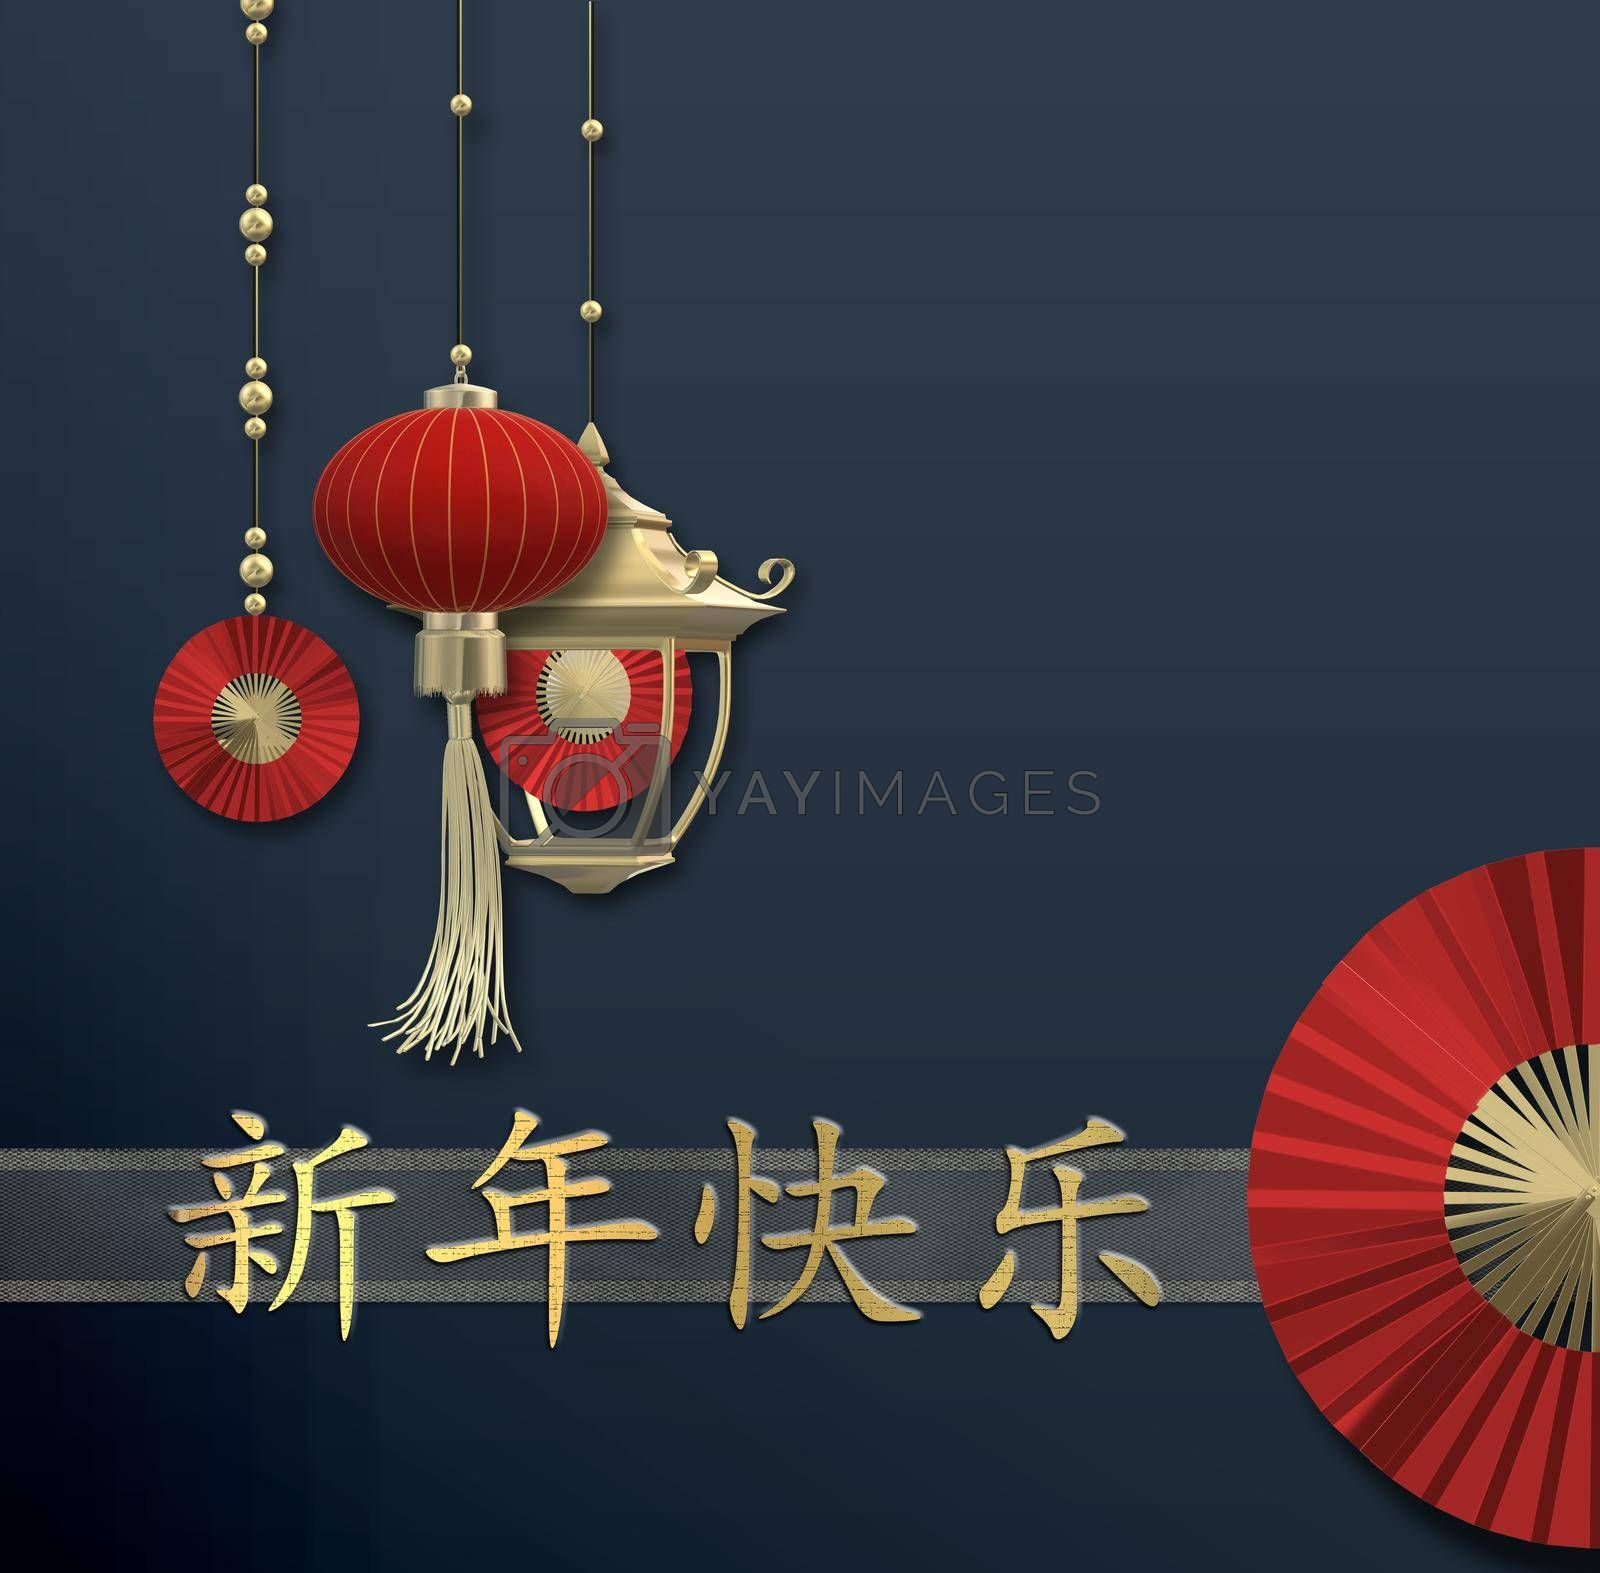 Chinese New Year over blue. Red realistic lanterns, fans. Chinese translation Happy Chinese New Year. Design for greetings, oriental new year card. 3D illustration